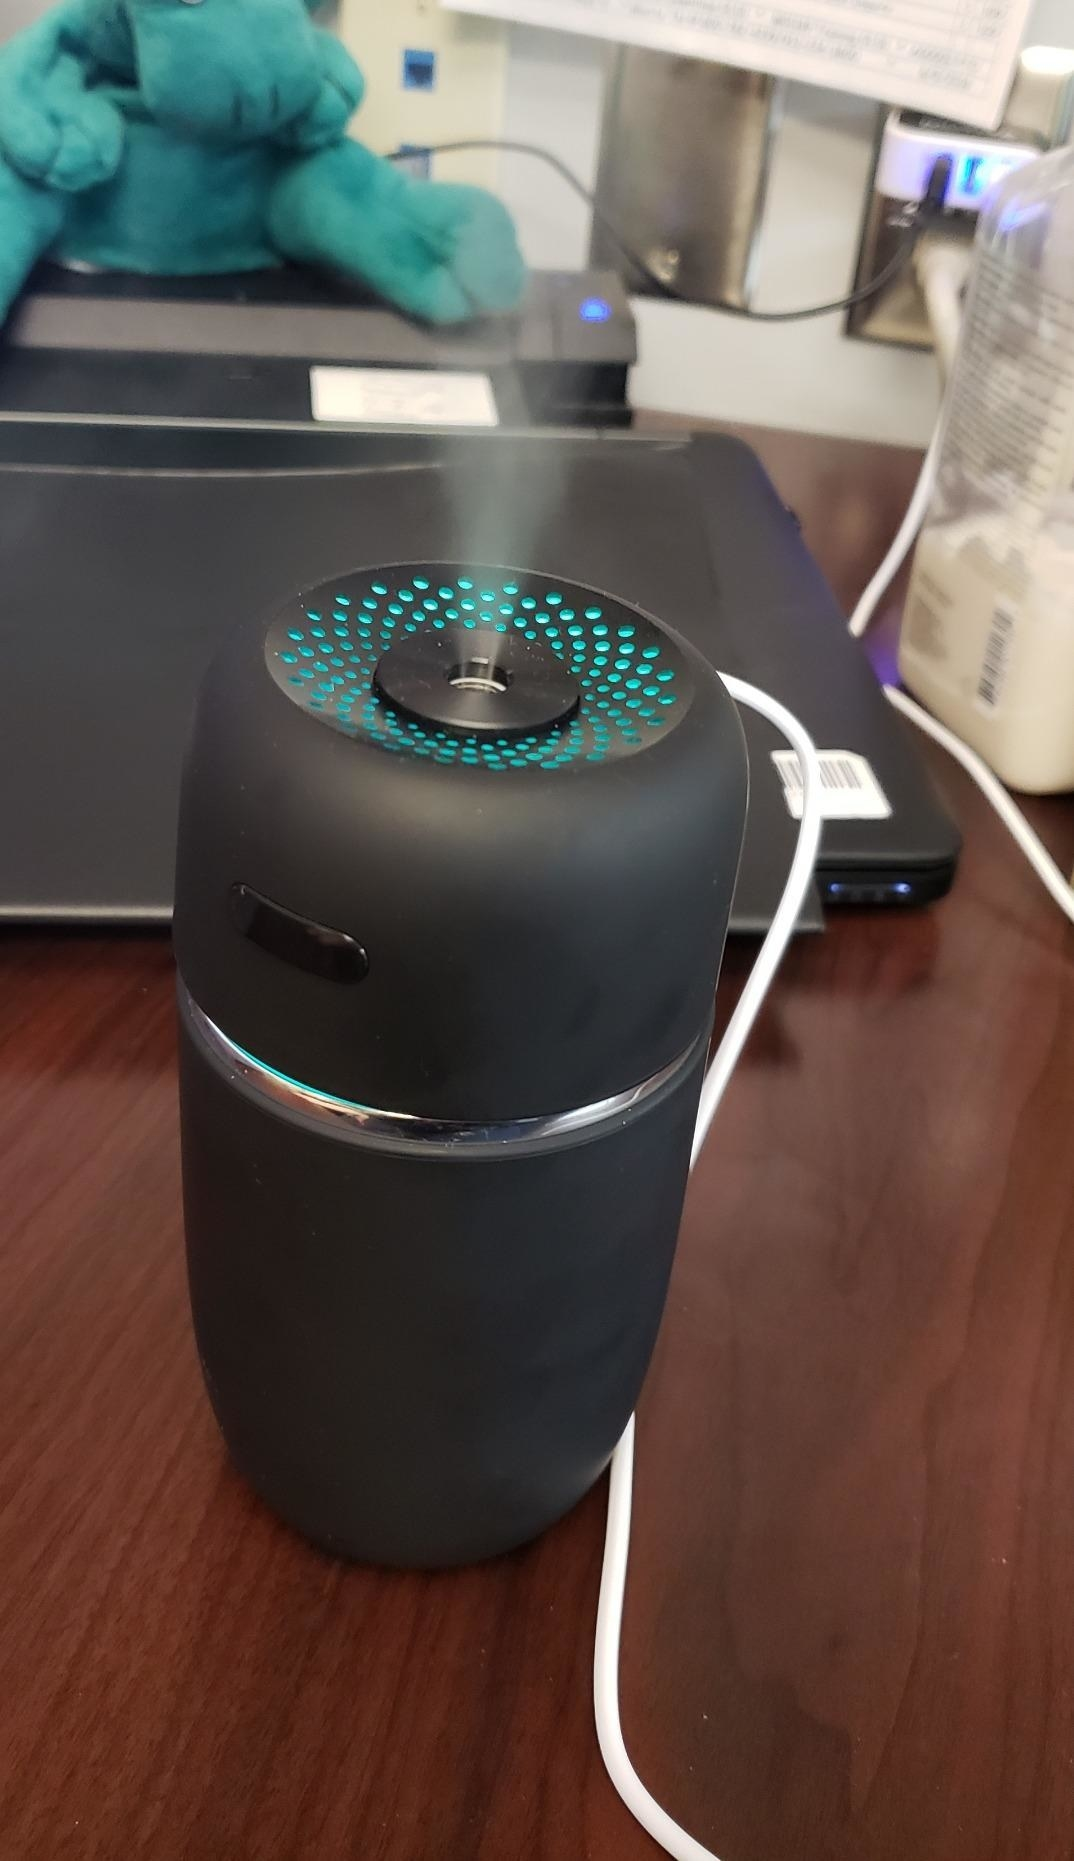 Reviewer using humidifier night light on desk